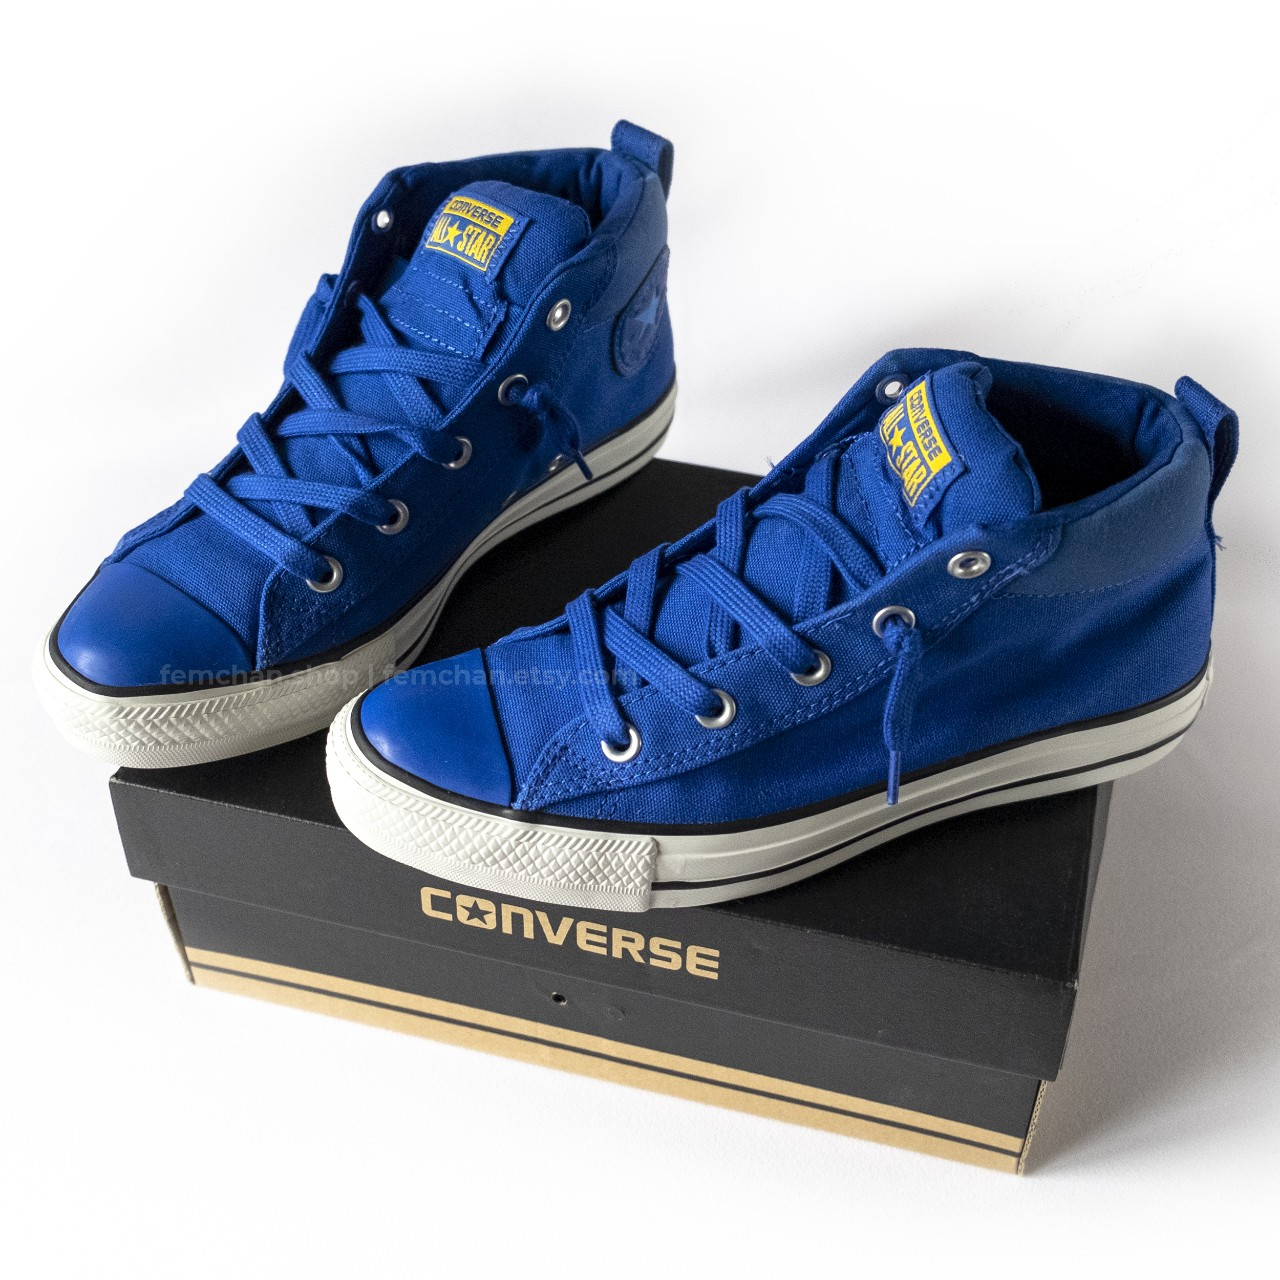 Product Image 1 - Converse All Stars slip-on sneakers